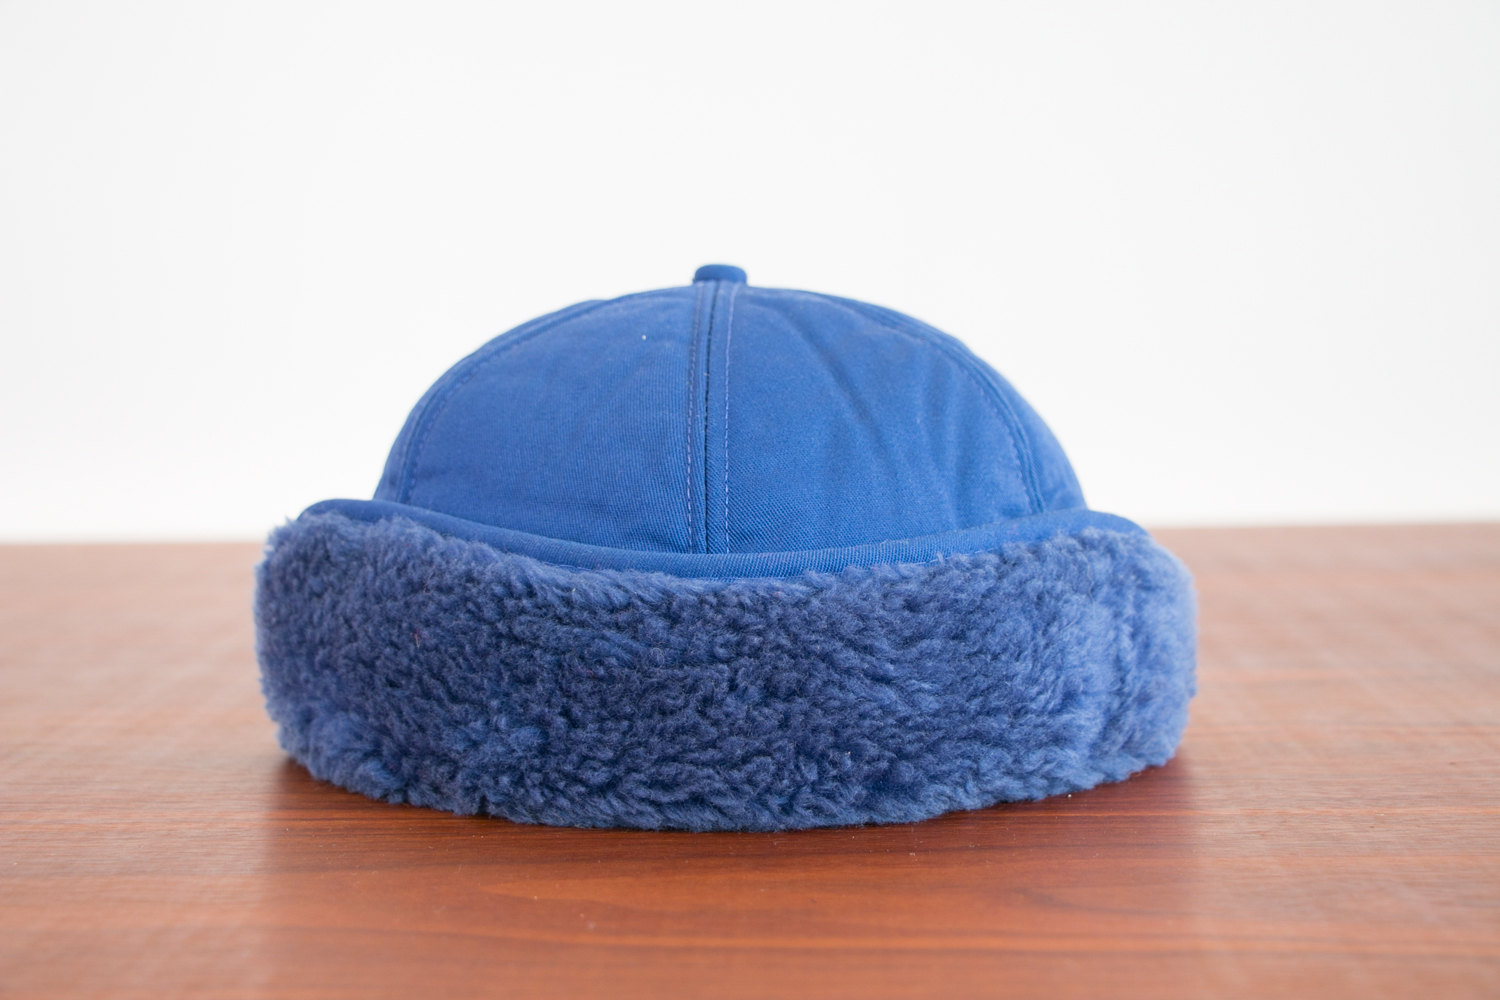 Vintage 1980's Fur Lined Trucker Hat with Ear Flaps, Insulated - Blue - Central Sands Sales Inc.  - Retro, Hipster, Indie